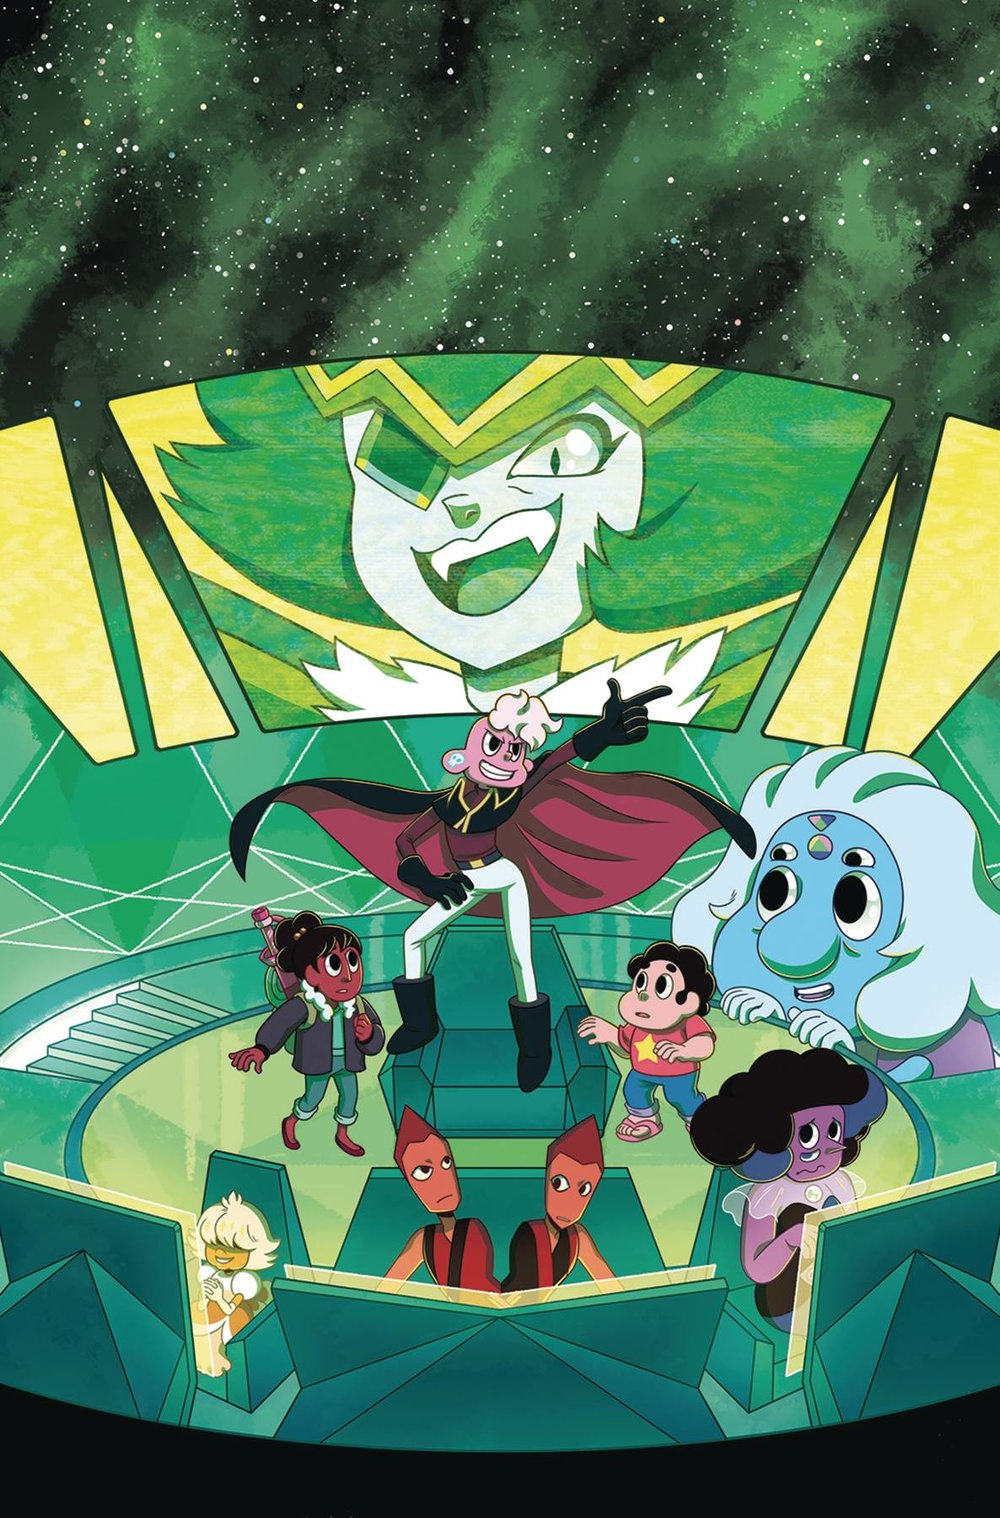 STEVEN UNIVERSE ONGOING 25 MAIN PENA CVR.jpg